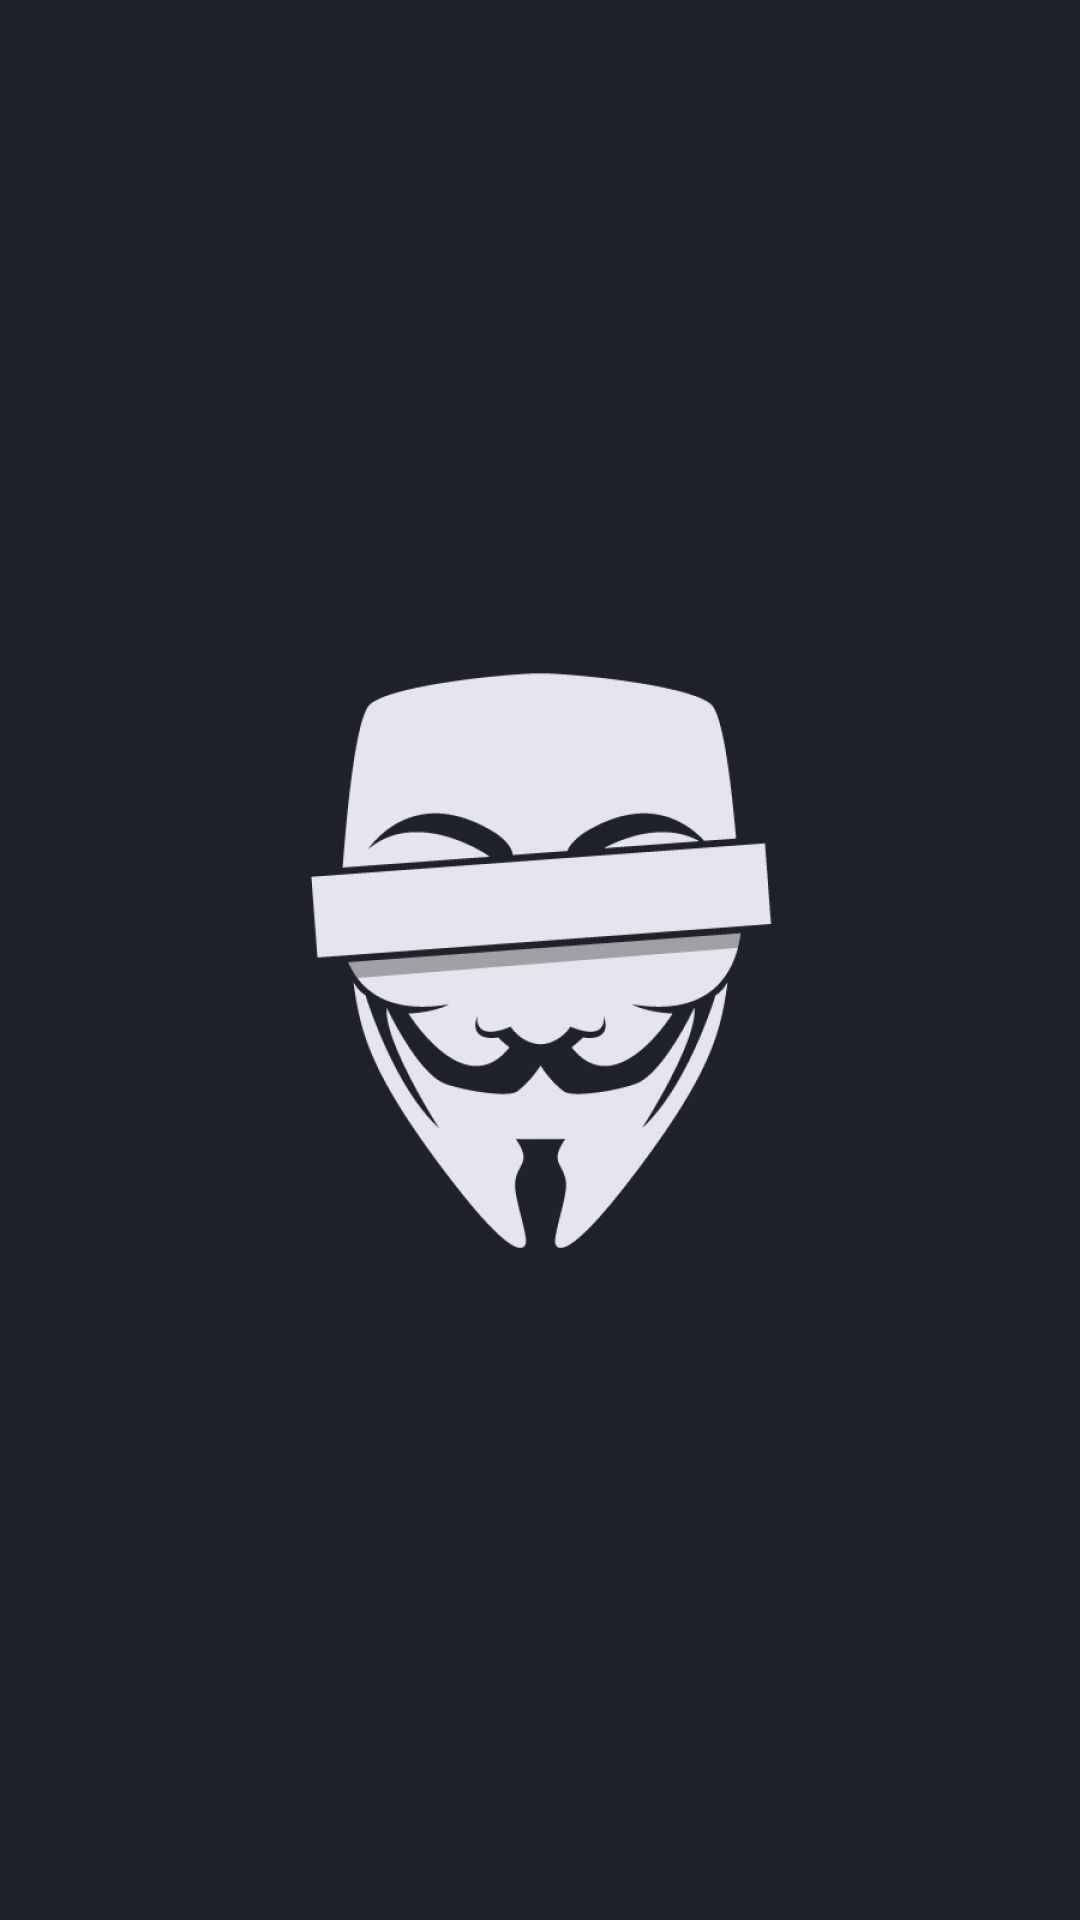 Anonymous Iphone Wallpapers Top Free Anonymous Iphone Backgrounds Wallpaperaccess